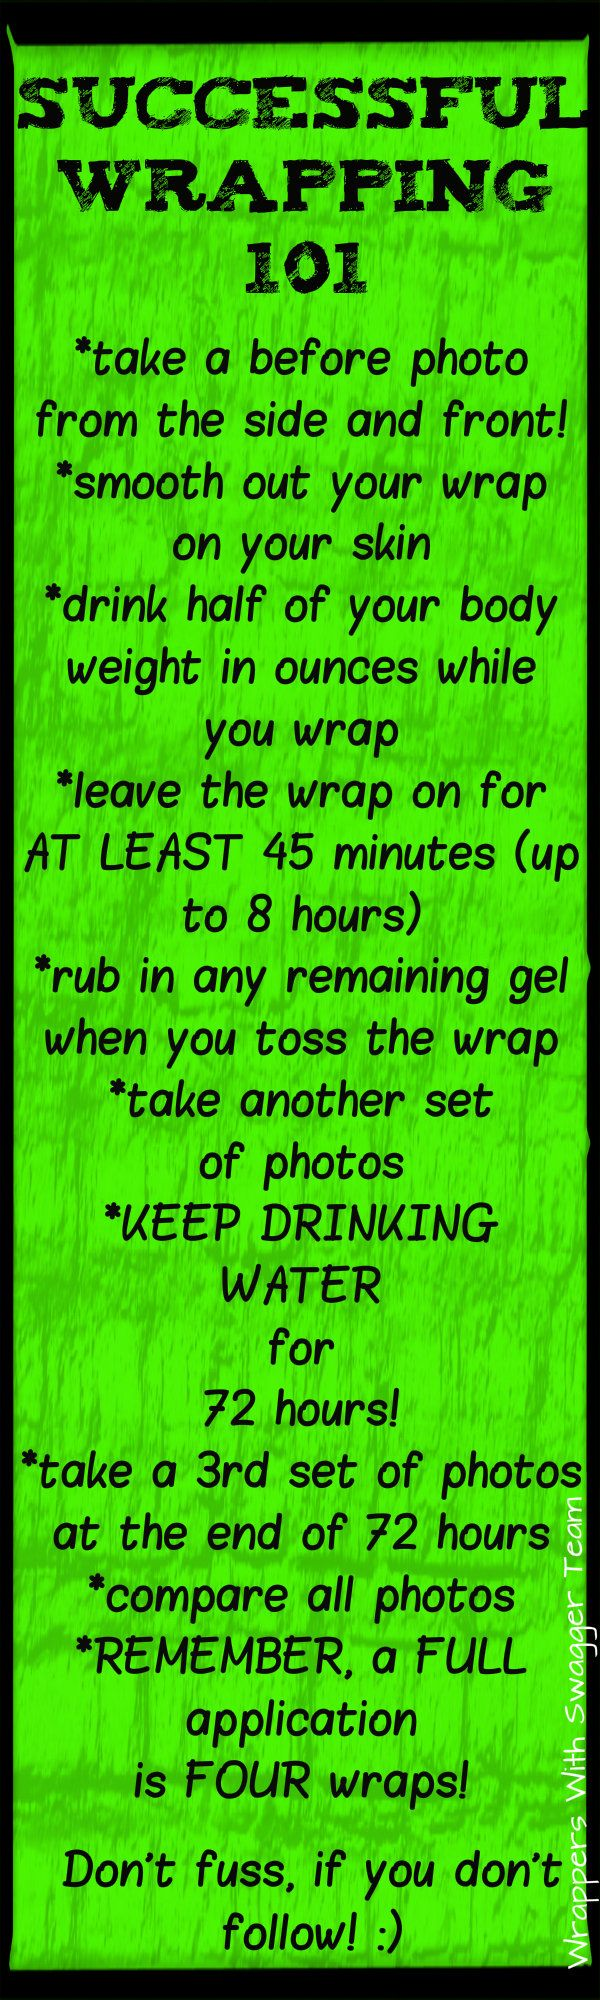 How to get the best results when using It Works Body Wraps! ✔ Inbox ✔ Call ✔ Text ✔ Facebook ✔ ME TODAY!!! order from my website @ http://astrayer.myitworks.com